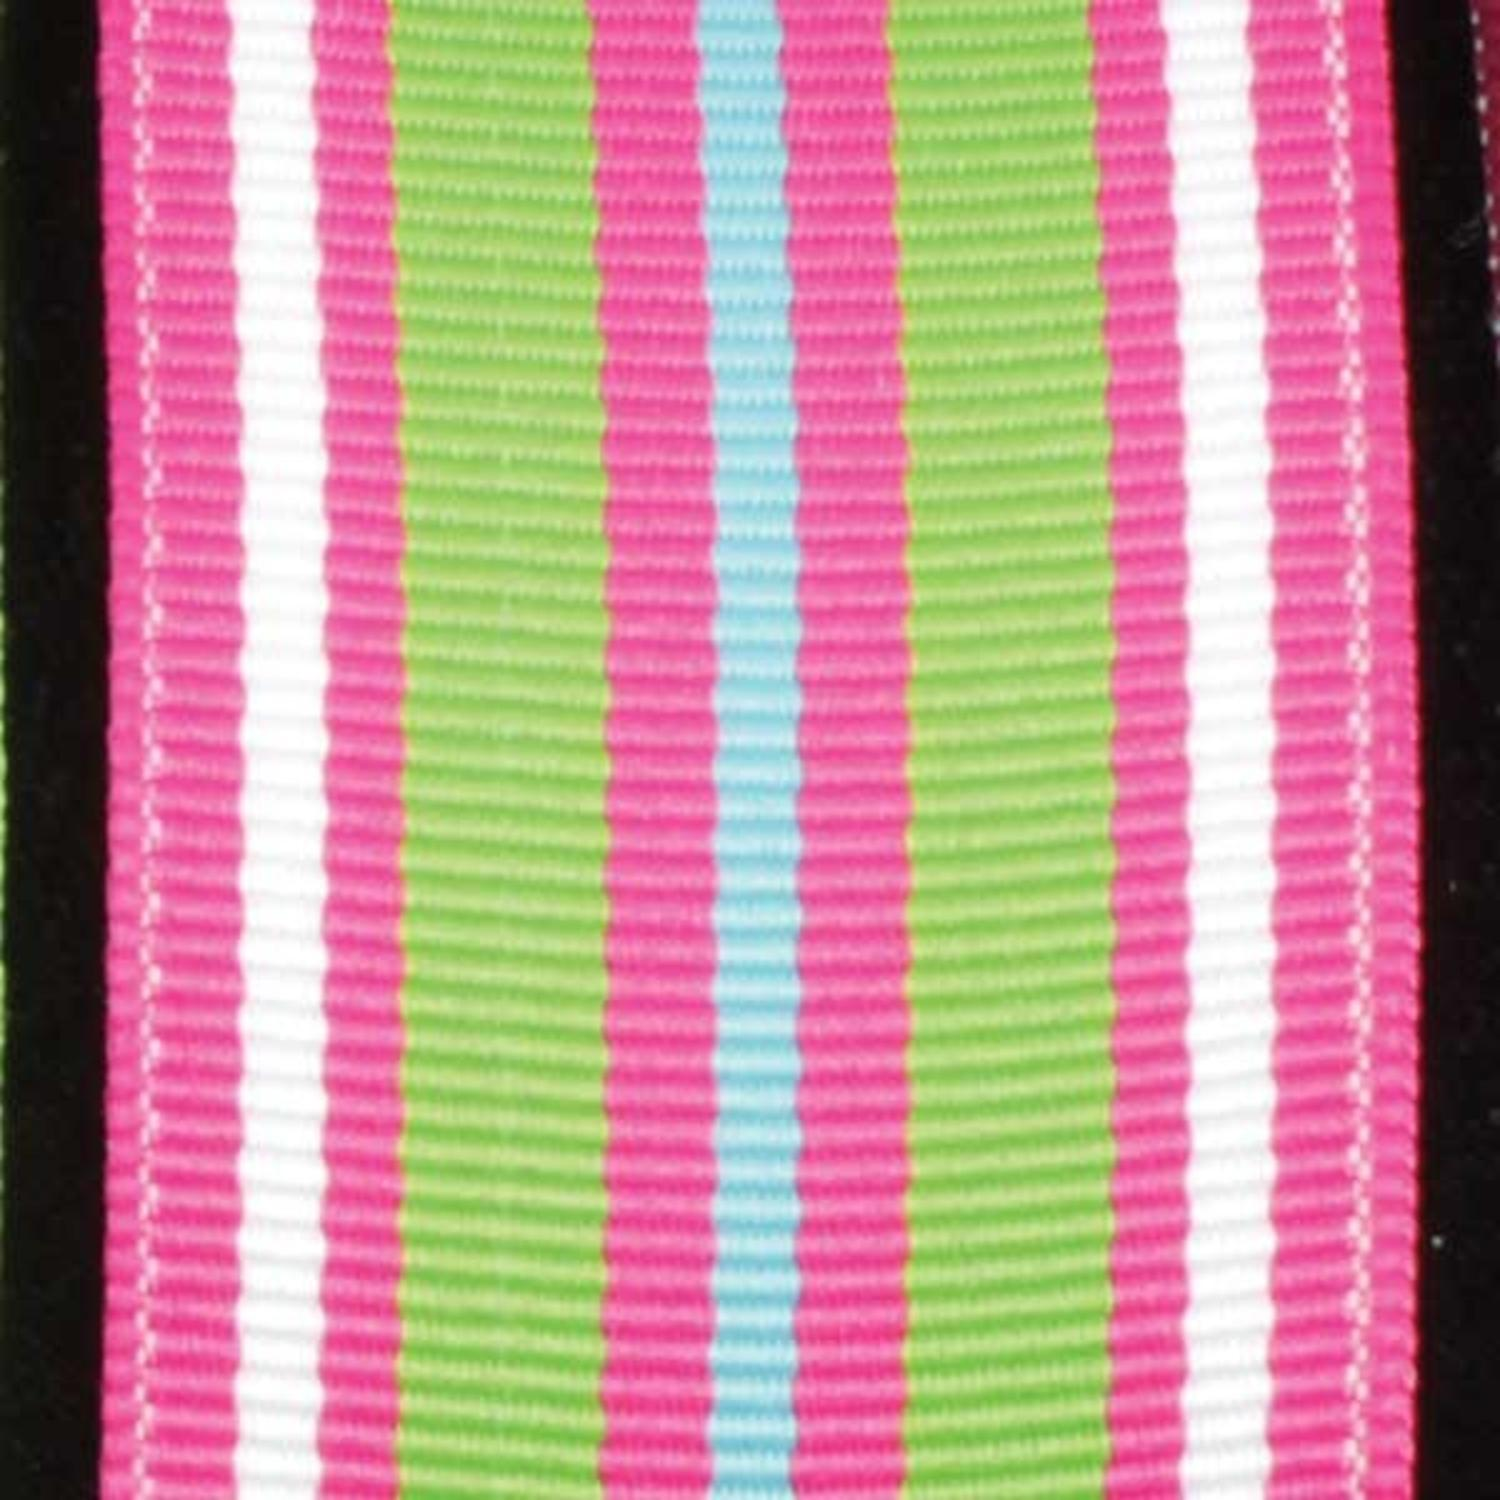 """Super Duper Stripes Pink and Green Grosgrain Wired Craft Ribbon 1.5"""" x 27 Yards"""